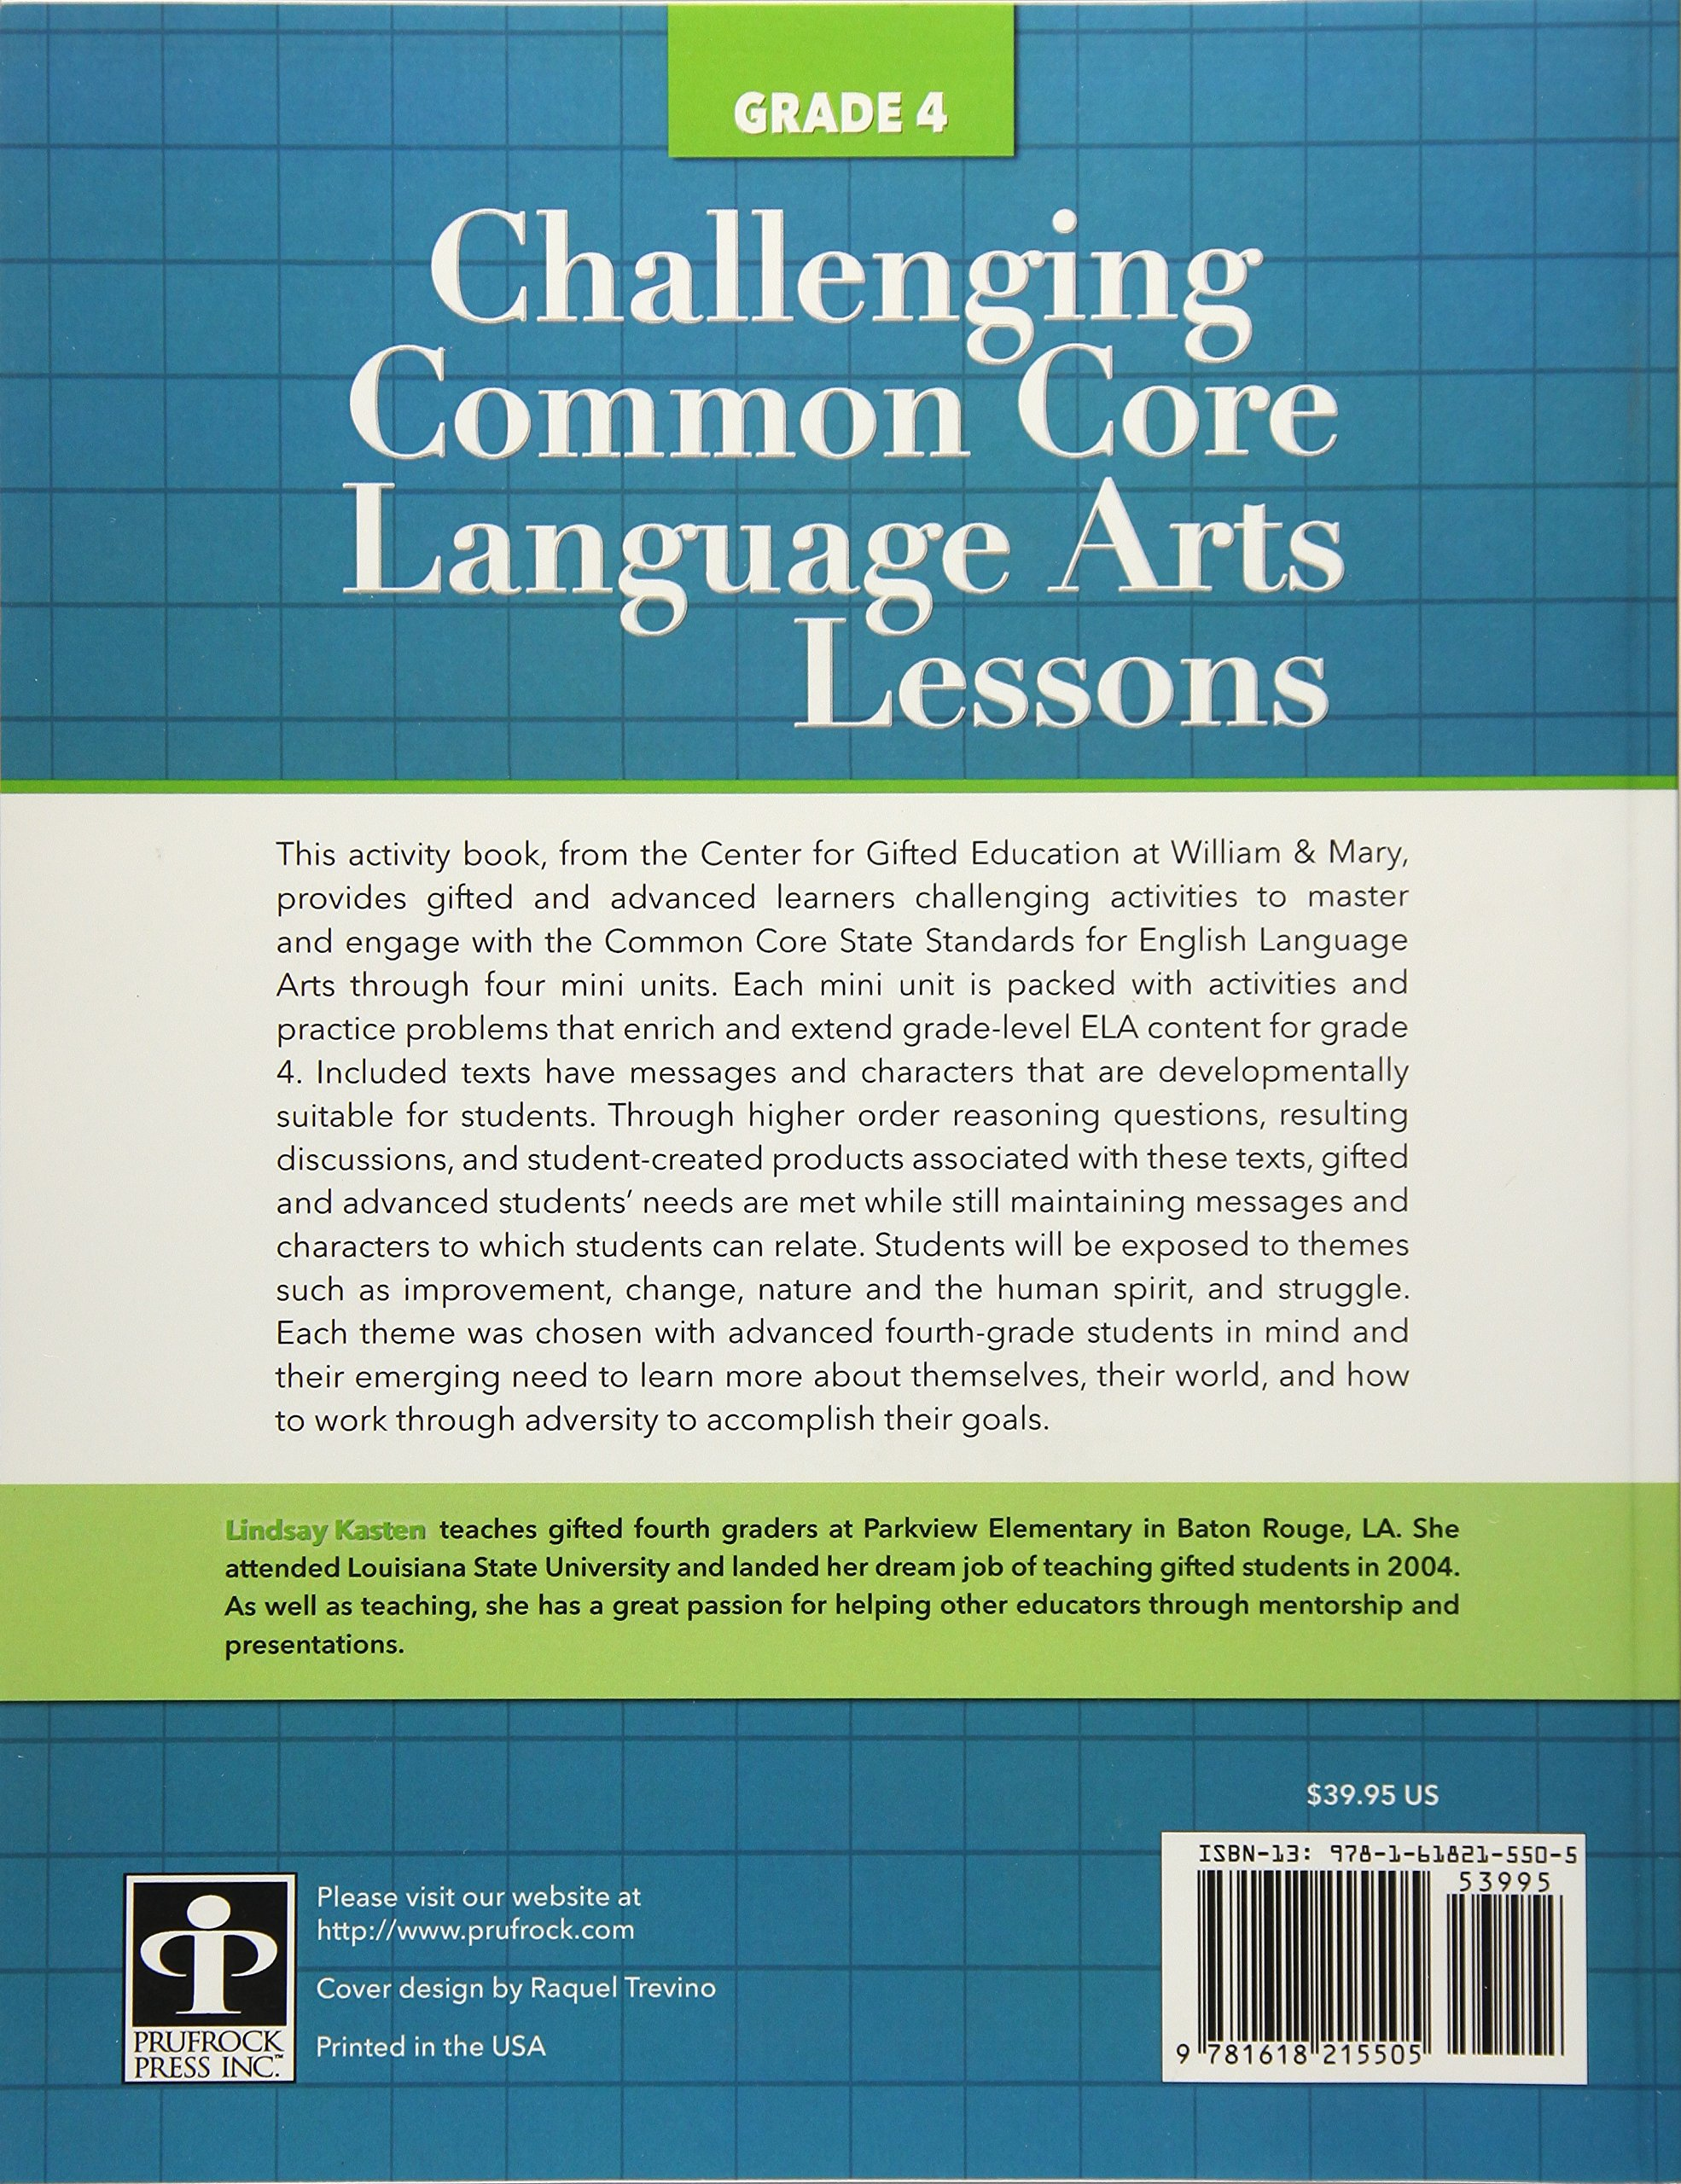 Amazon.com: Challenging Common Core Language Arts Lessons (Grade 4 ...